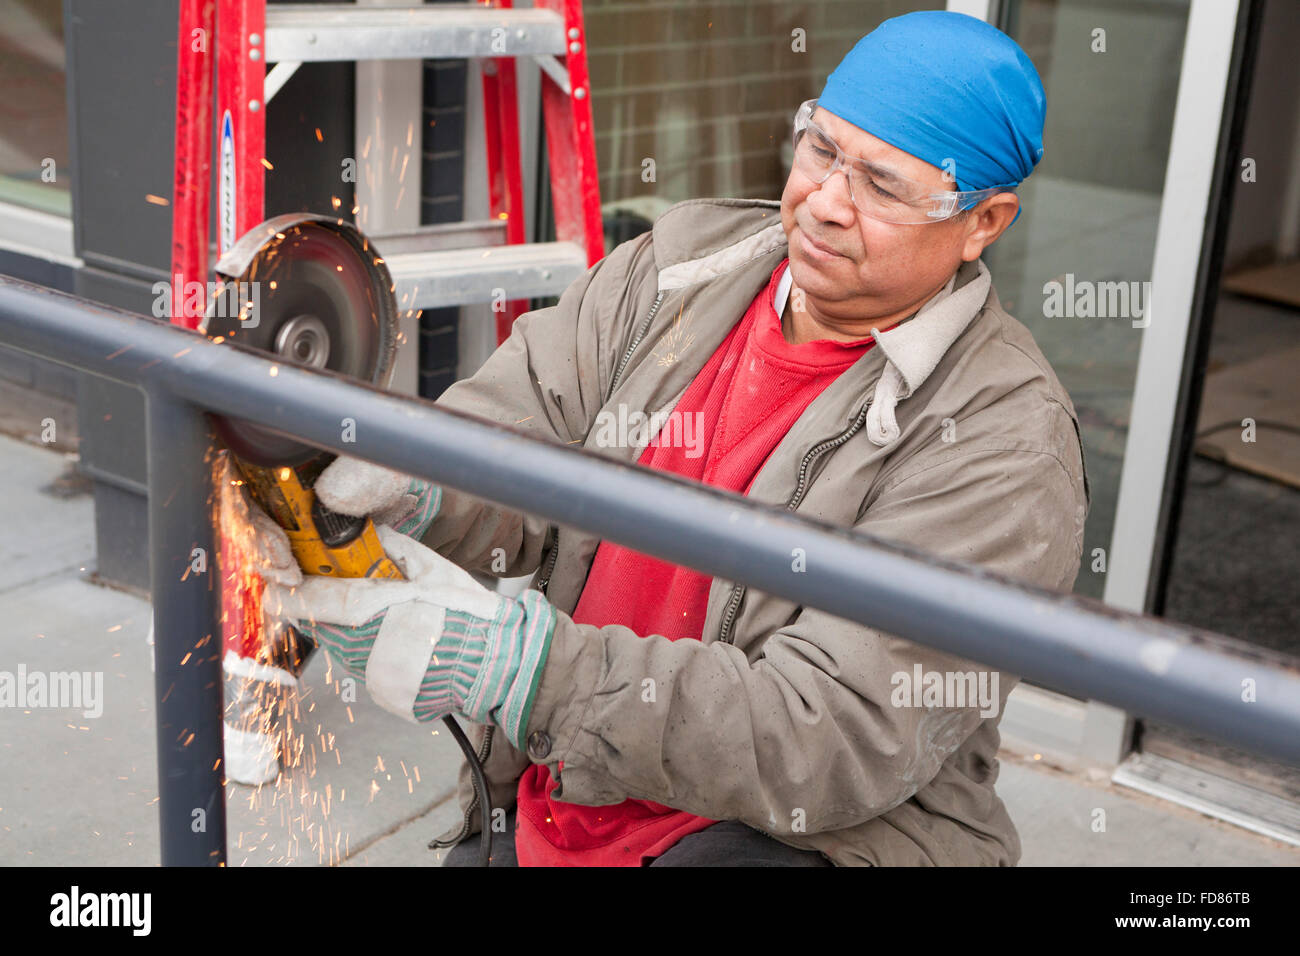 Construction worker cutting steel pipe with angle grinder tool - USA Stock Photo